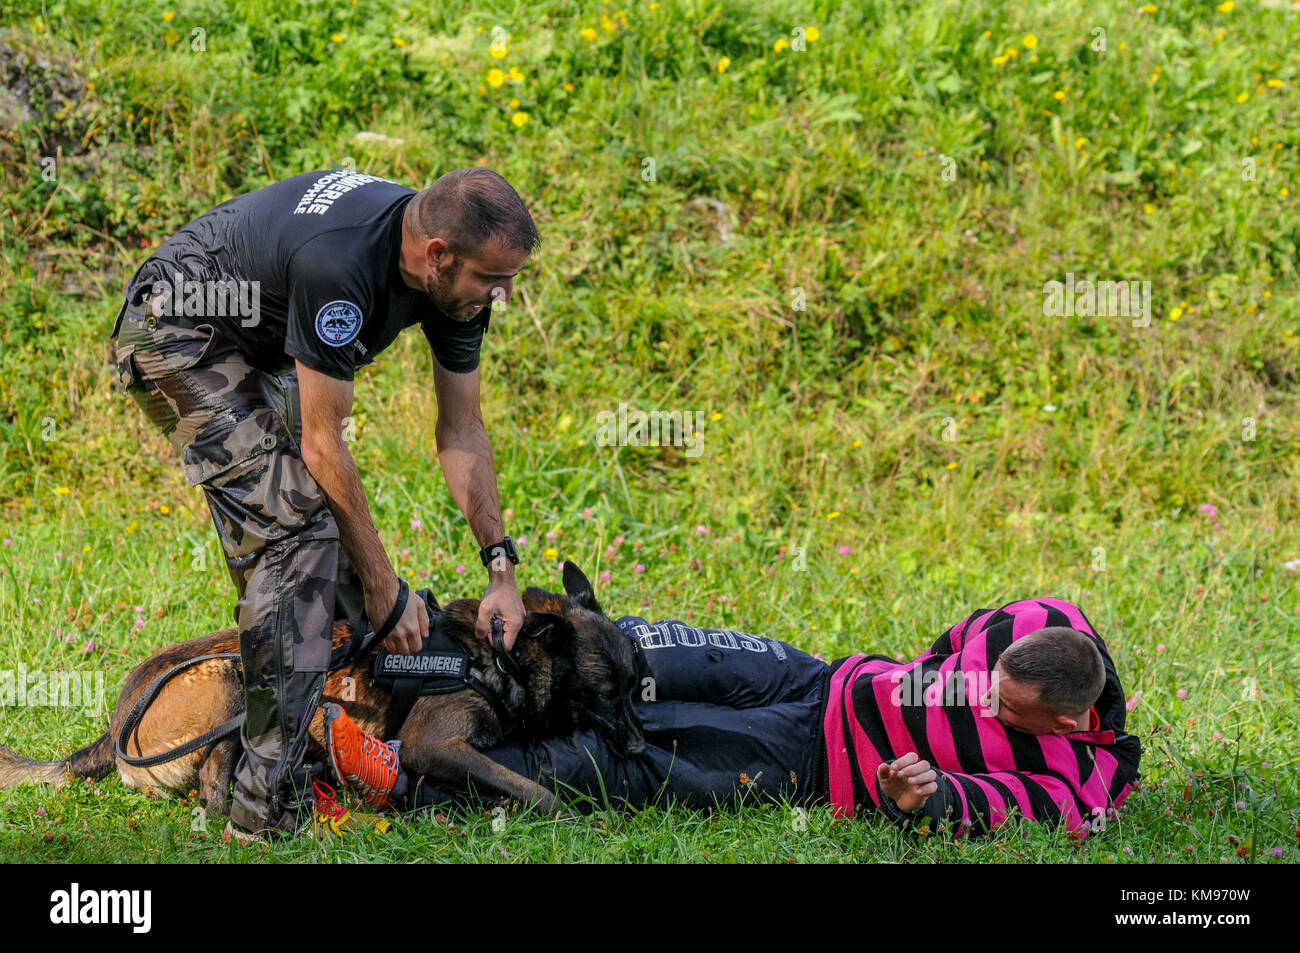 French and swiss gendarmes take part in a lifesize drill at Leman lake, Savoie, France - Stock Image